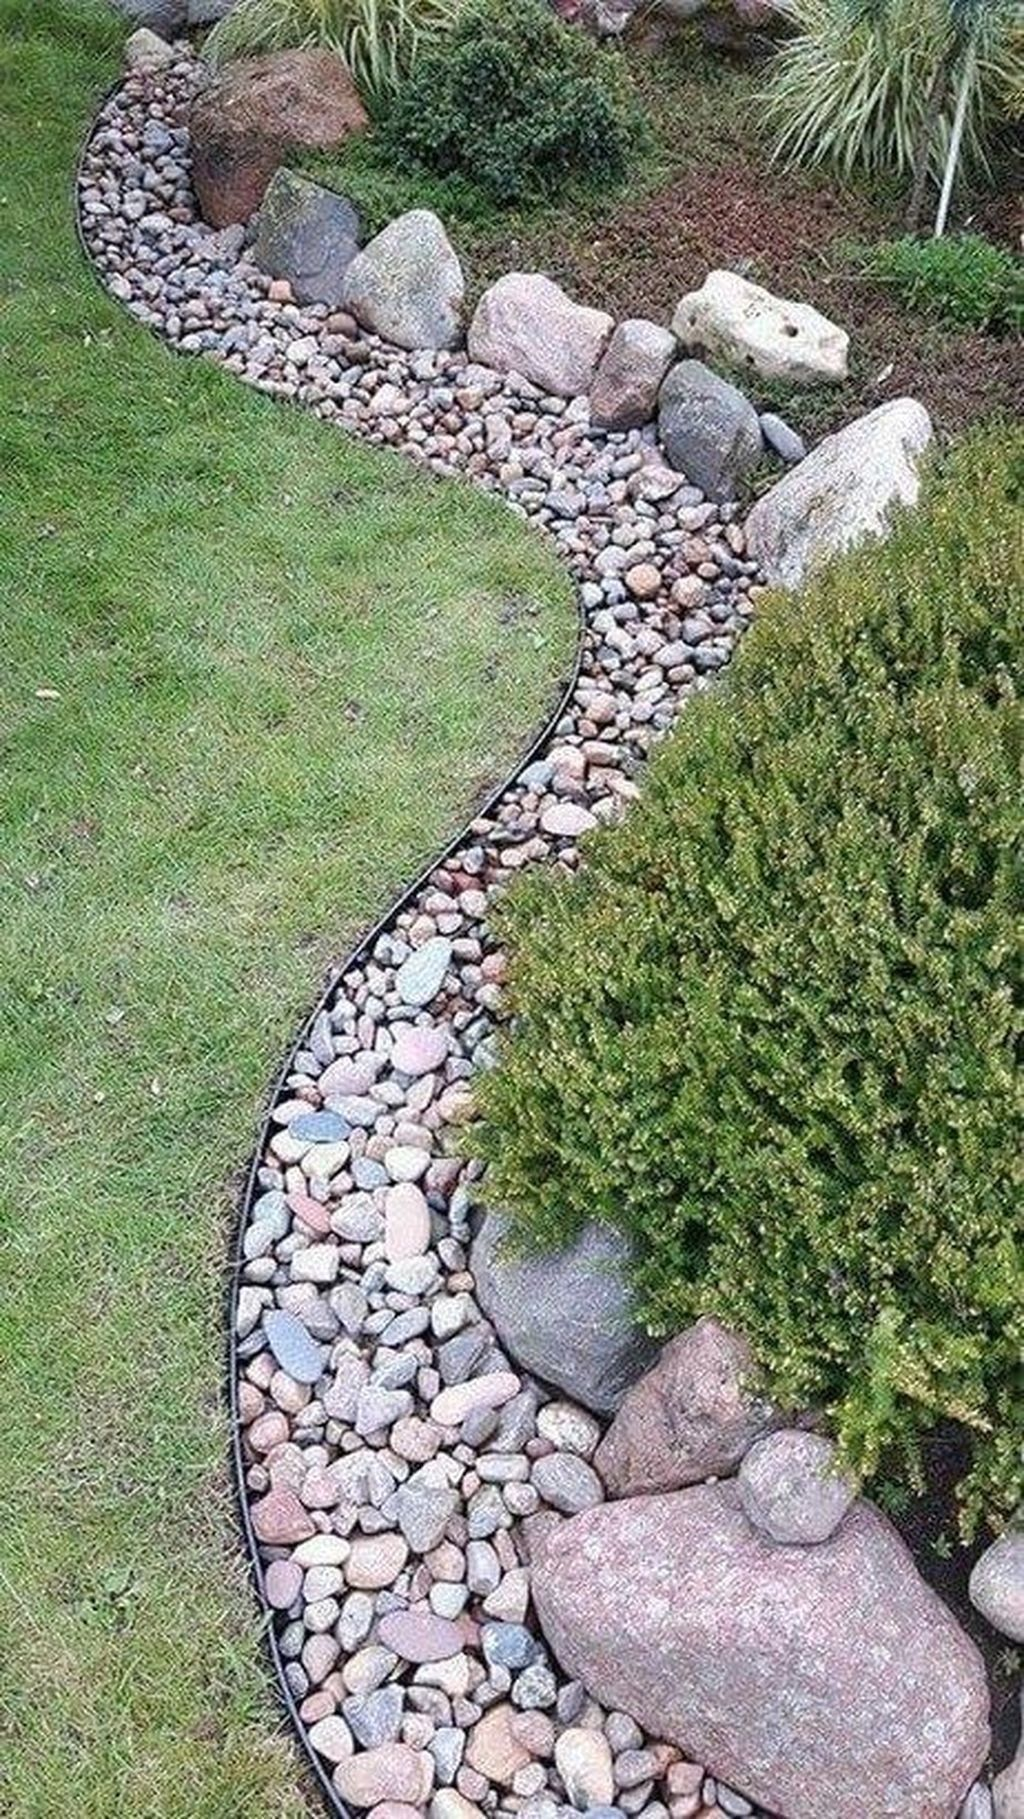 59 Awesome Front Yard And Backyard Landscaping Design Ideas Home Decor Diy Design Aw Front Yard Landscaping Design Rock Garden Design Rock Garden Landscaping Backyard landscaping ideas with rock